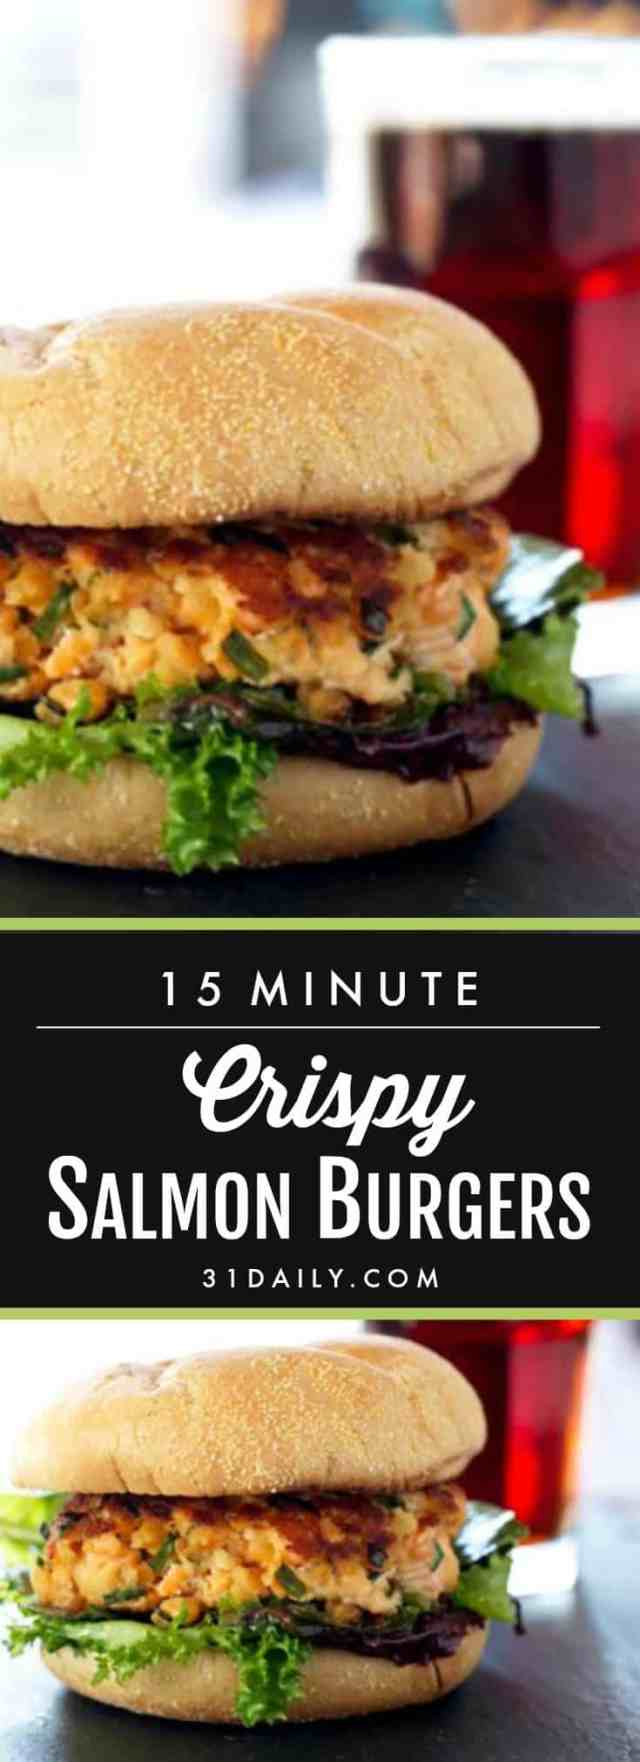 Easy Crispy Salmon Burgers in 15 Minutes or Less | 31Daily.com